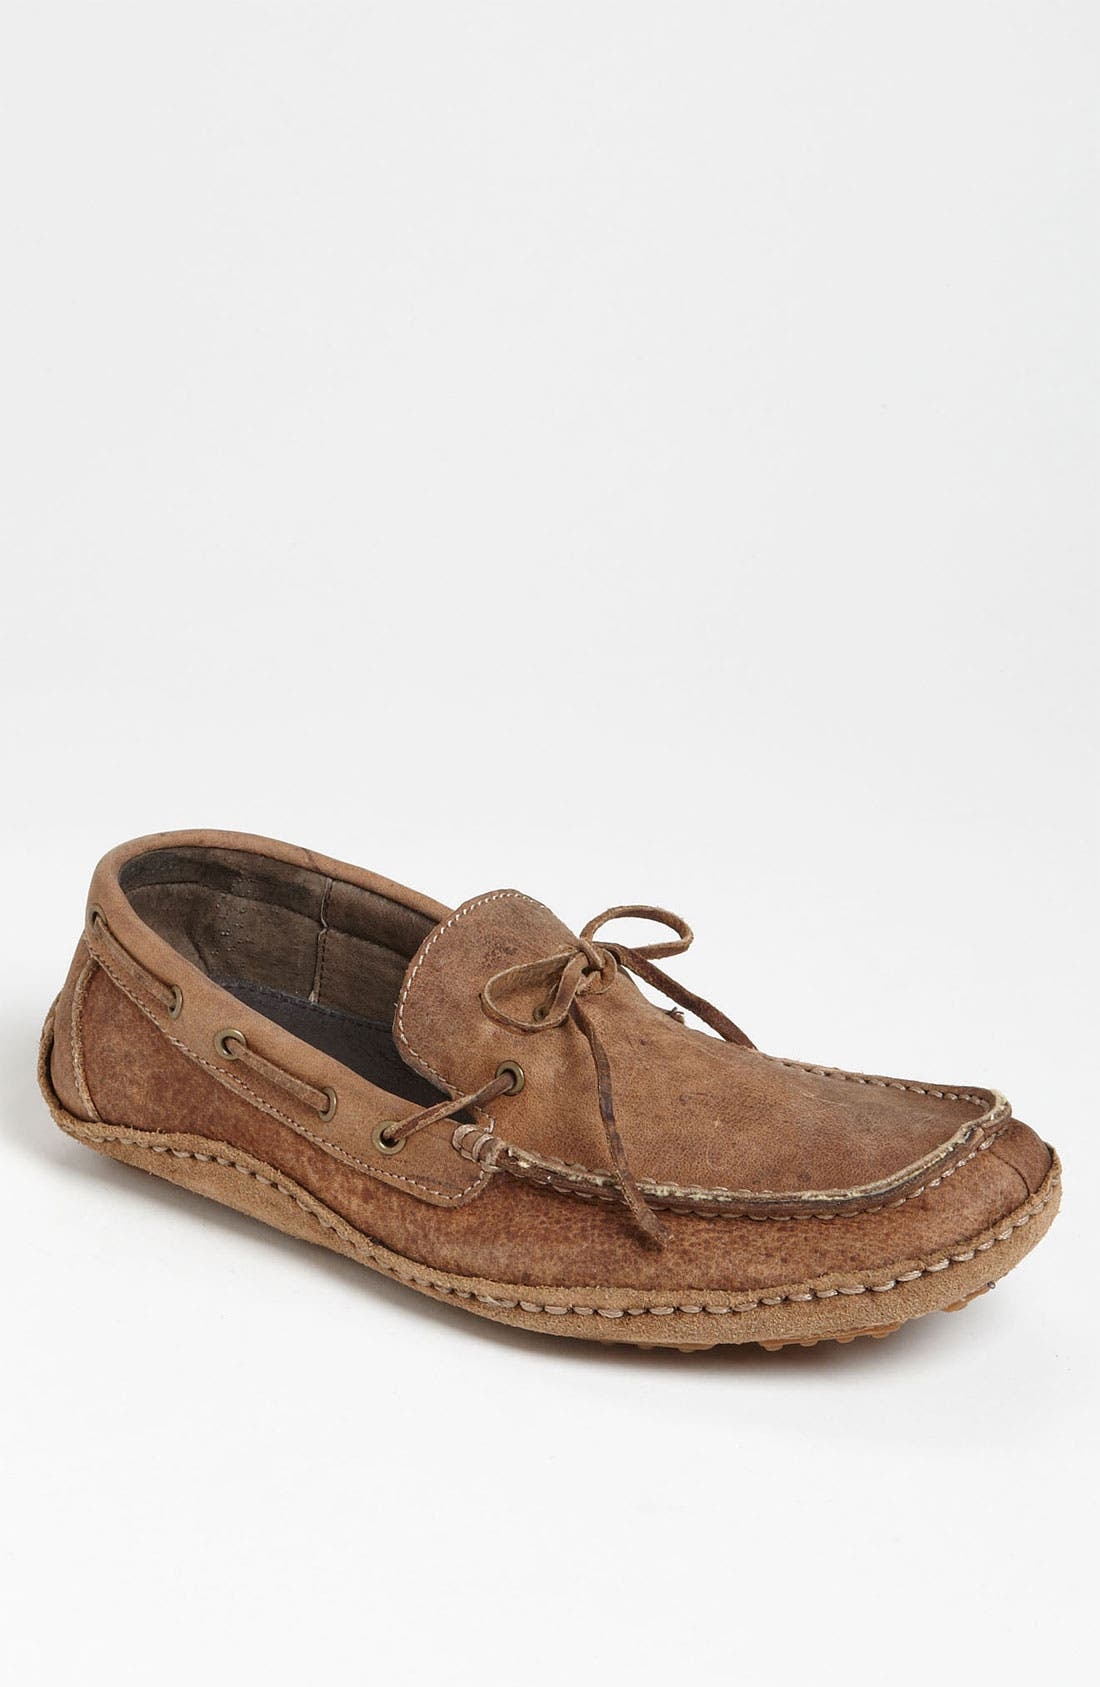 Alternate Image 1 Selected - Bed Stu 'Surfliner' Driving Shoe (Online Only) (Men)